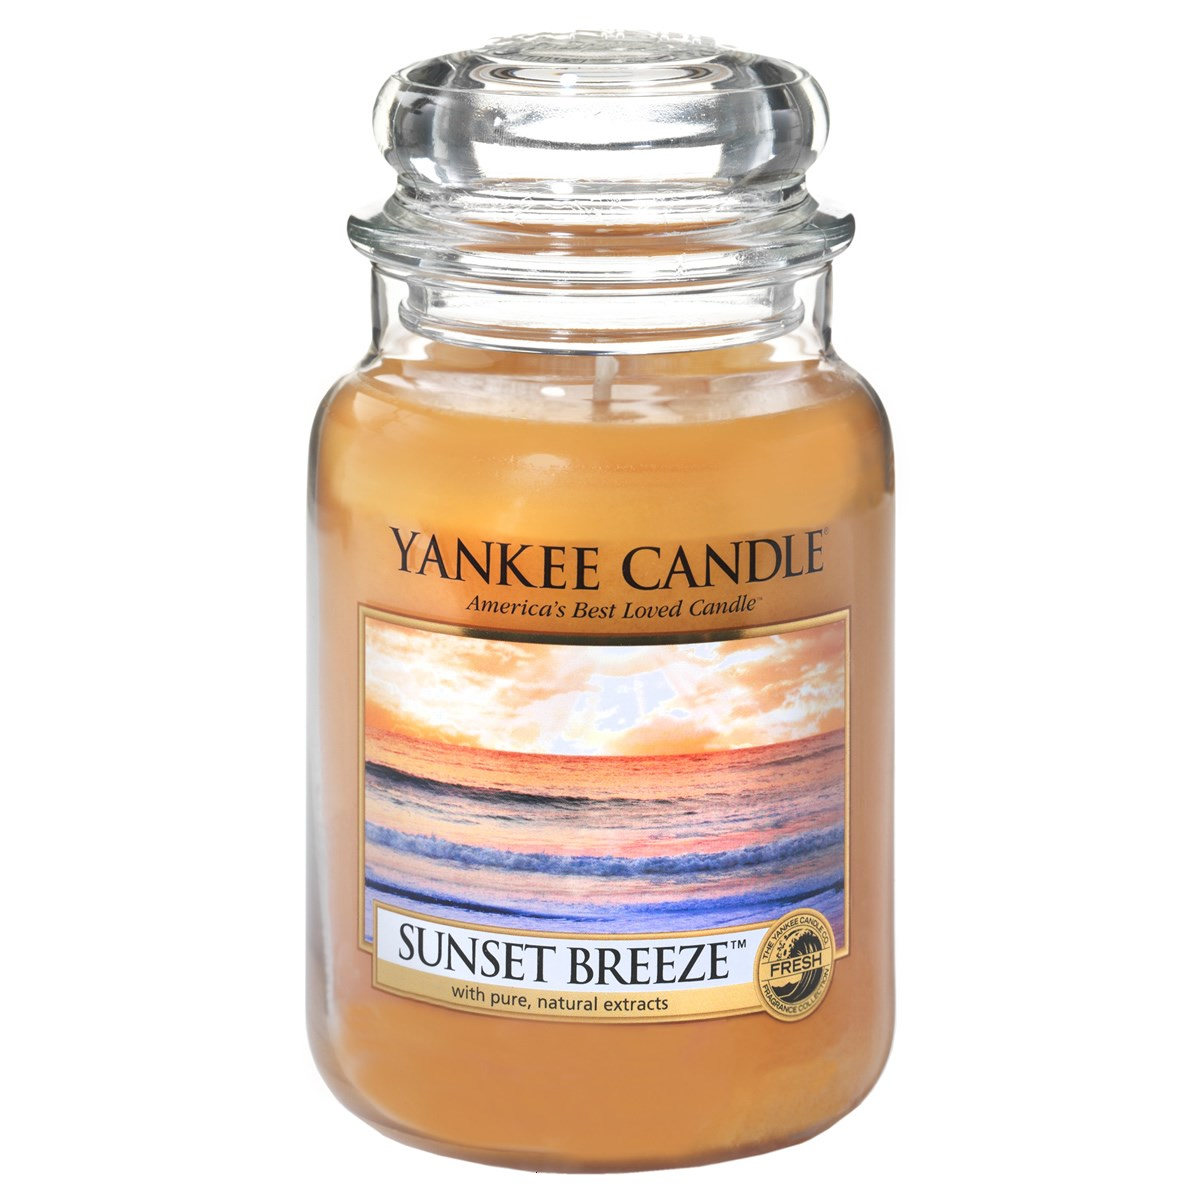 Yankee Candle Housewarmer Jar - Sunset Breeze